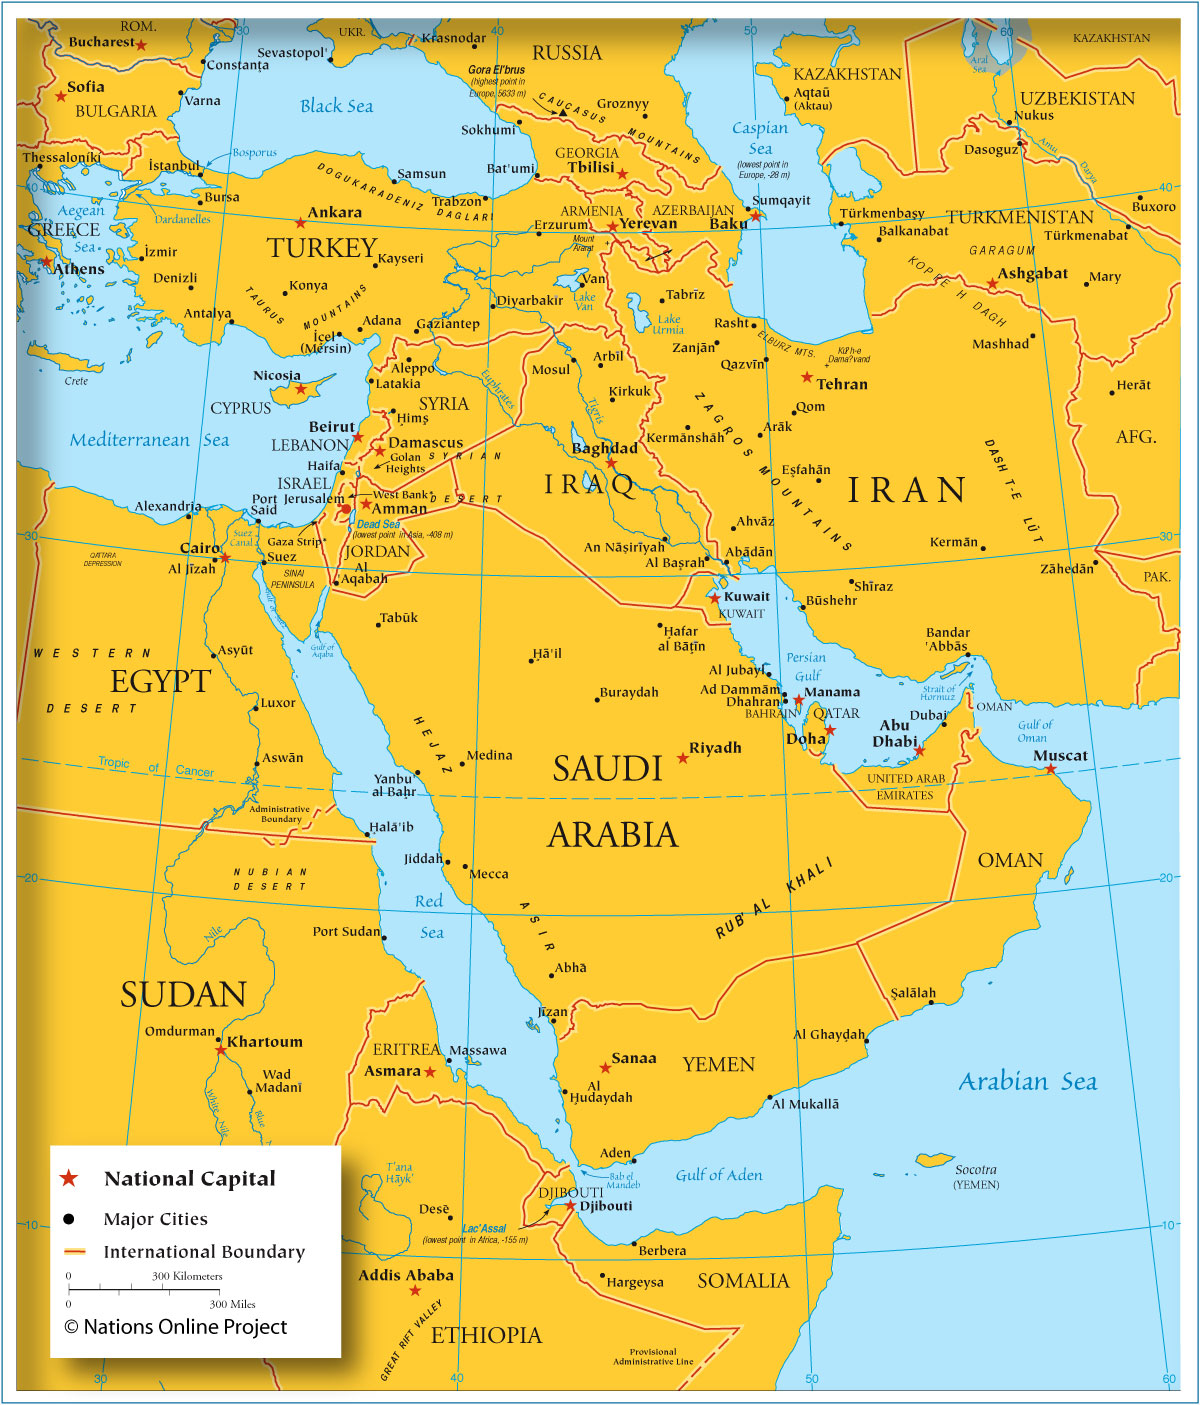 Worksheet. Map of Countries in Western Asia and the Middle East  Nations